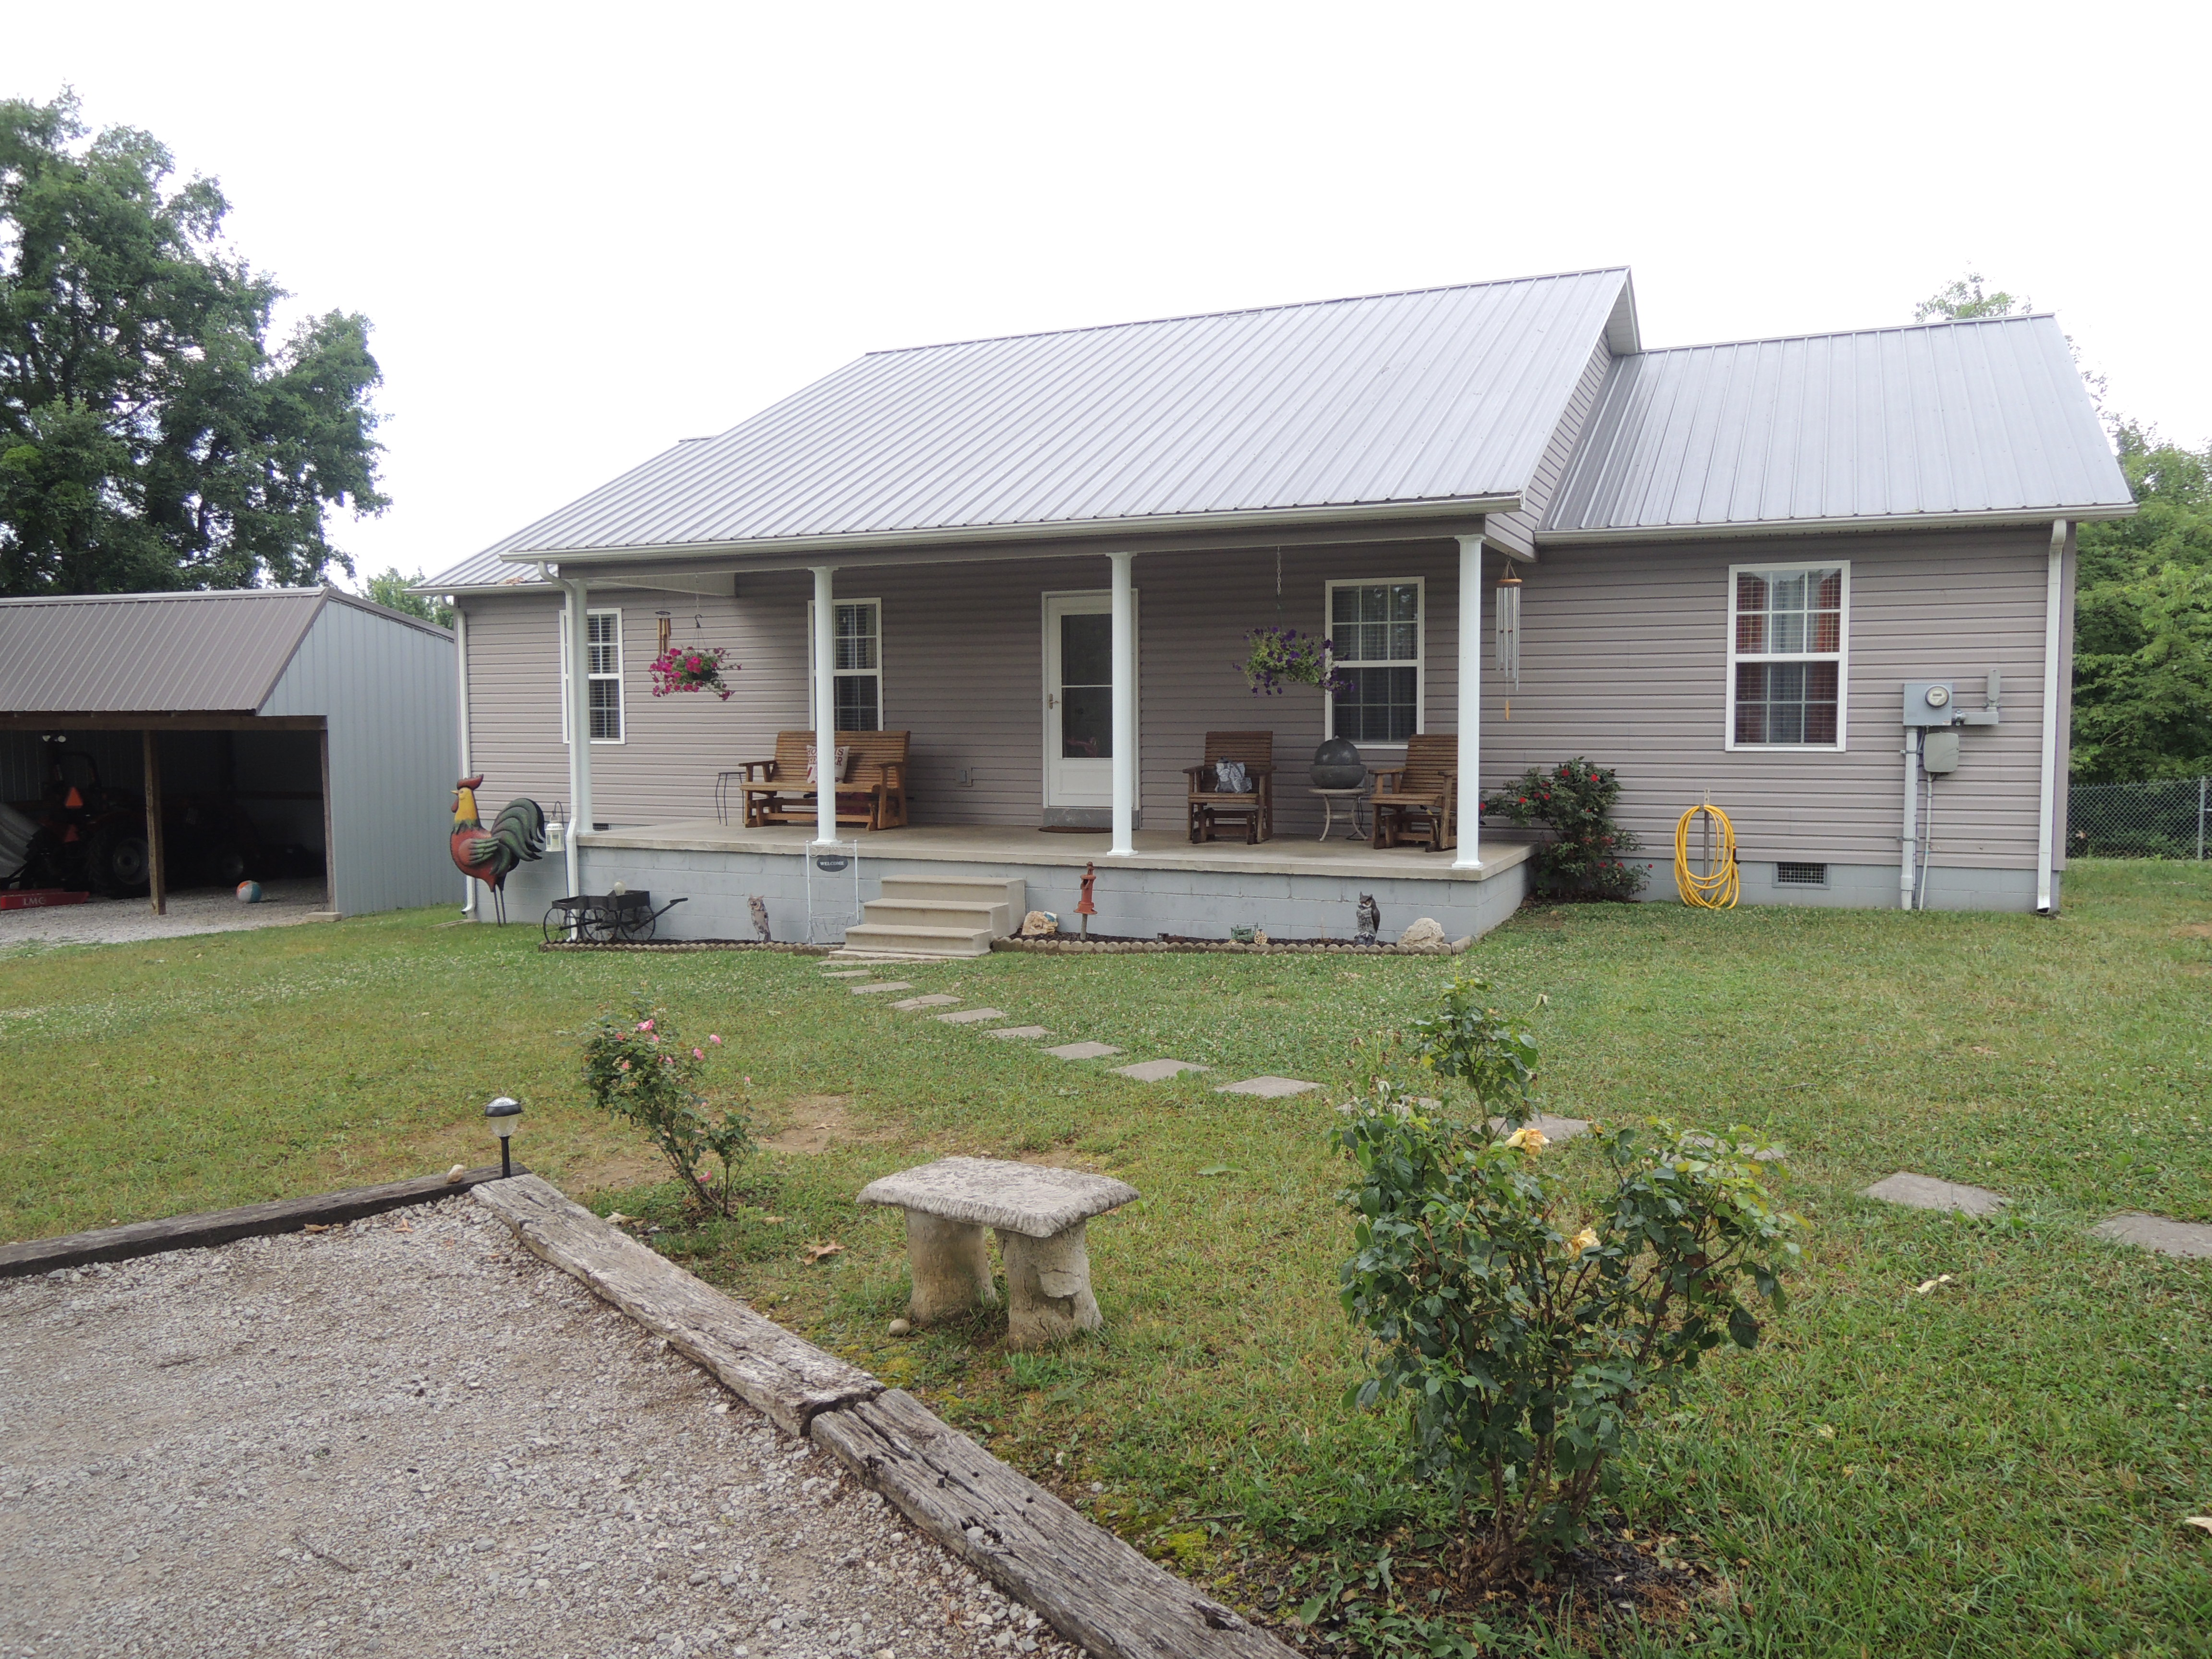 #1675 – 2076 Old Wolf River Rd.